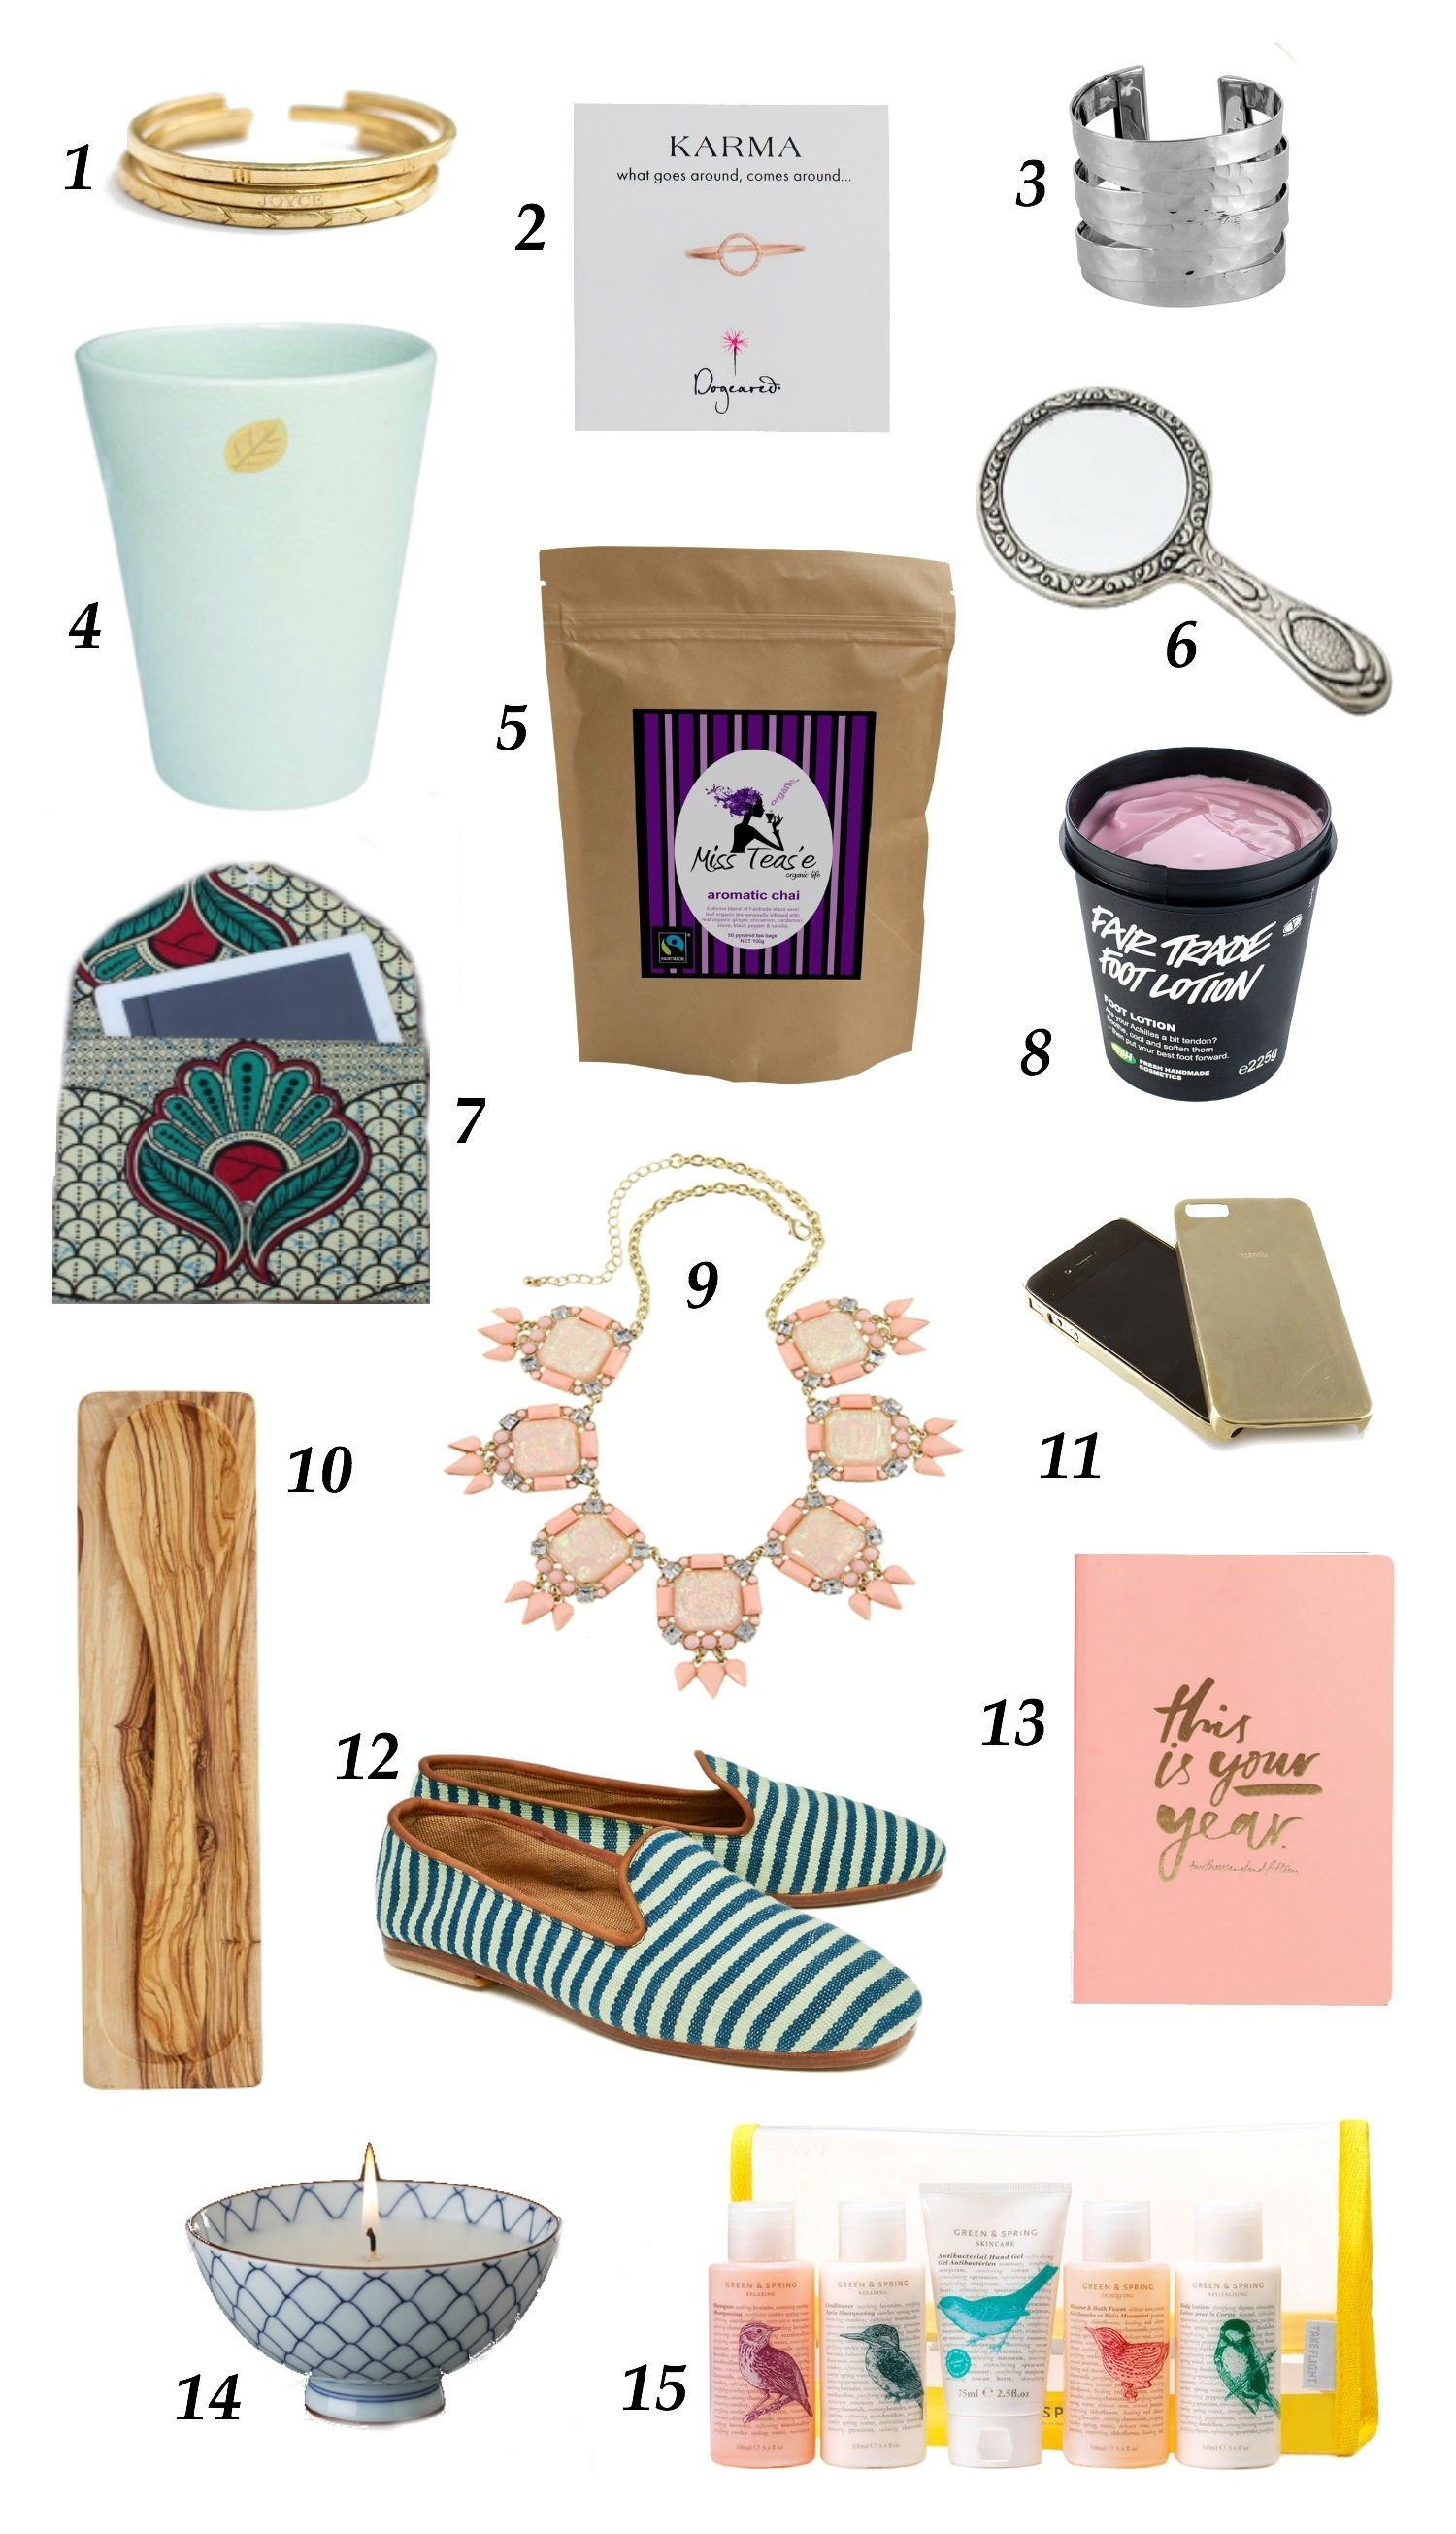 10 Beautiful Gift Ideas For A Woman ethical christmas gift ideas for women one fair day 6 2021